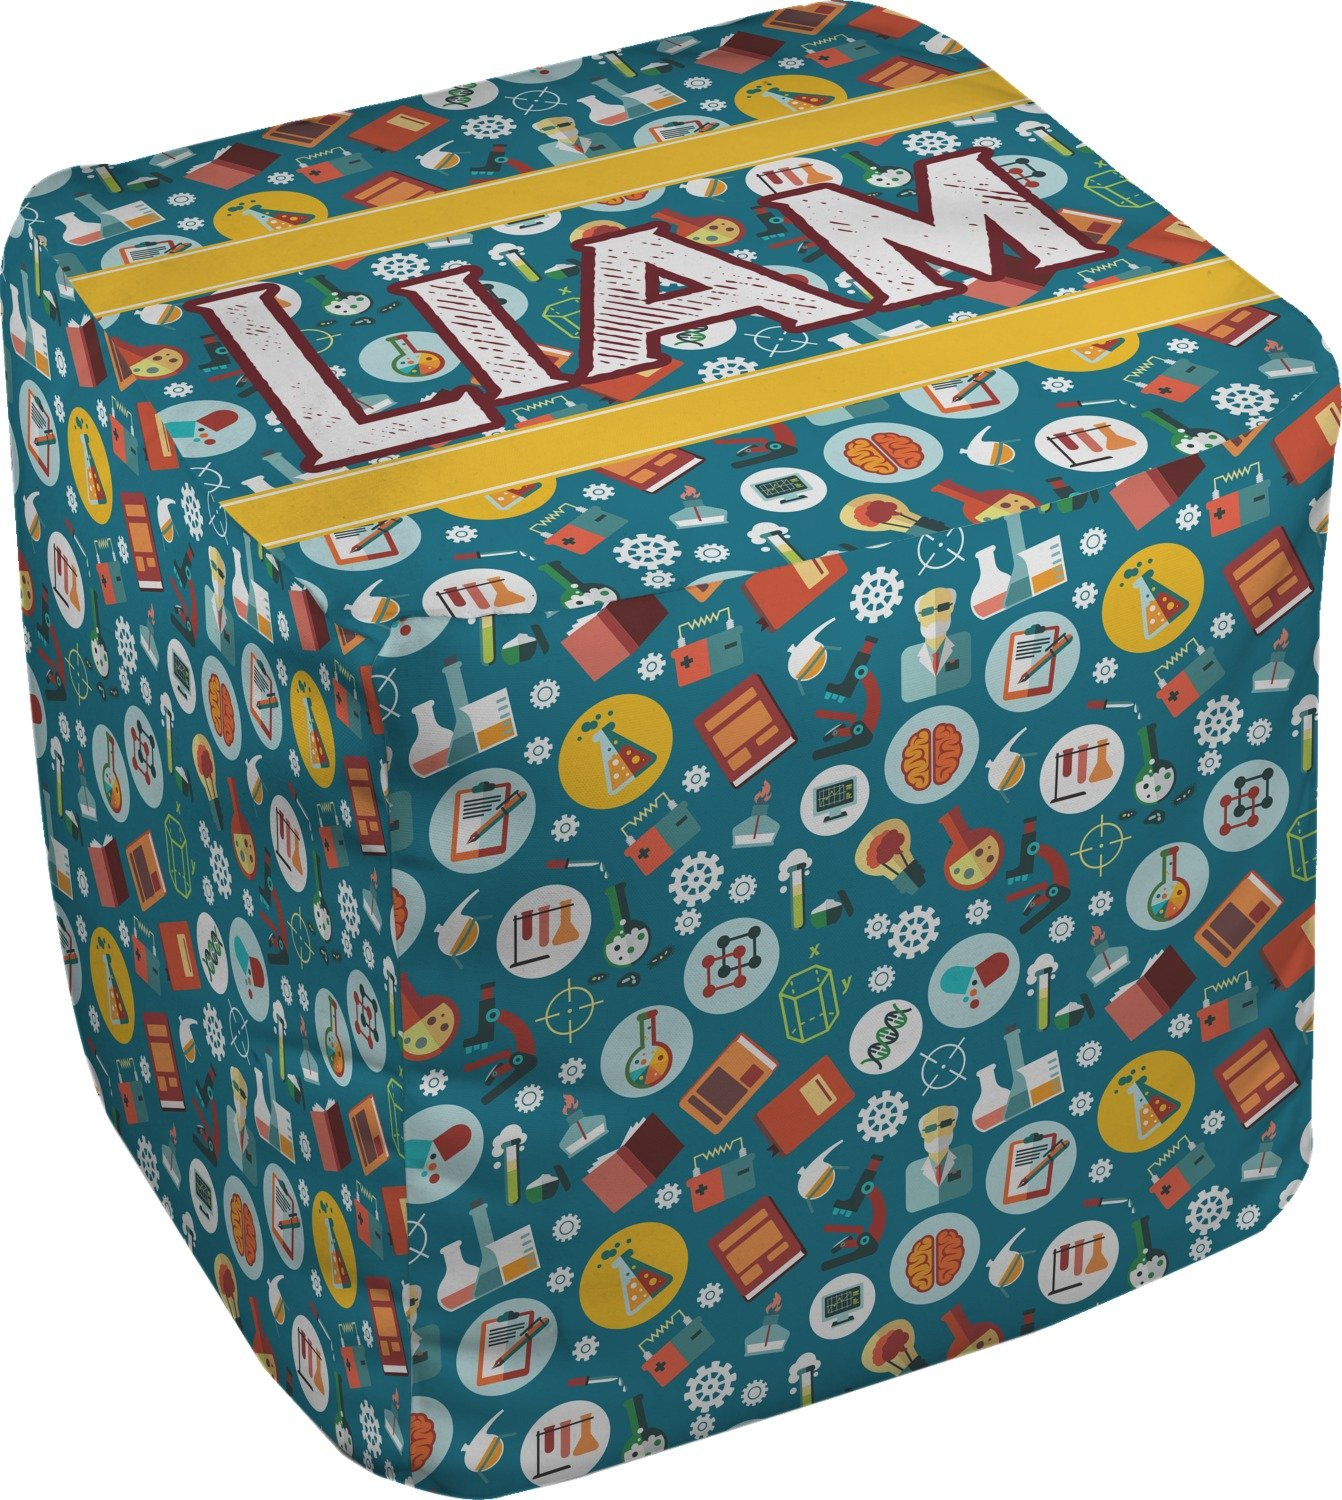 Rocket Science Cube Pouf Ottoman - 18'' (Personalized)